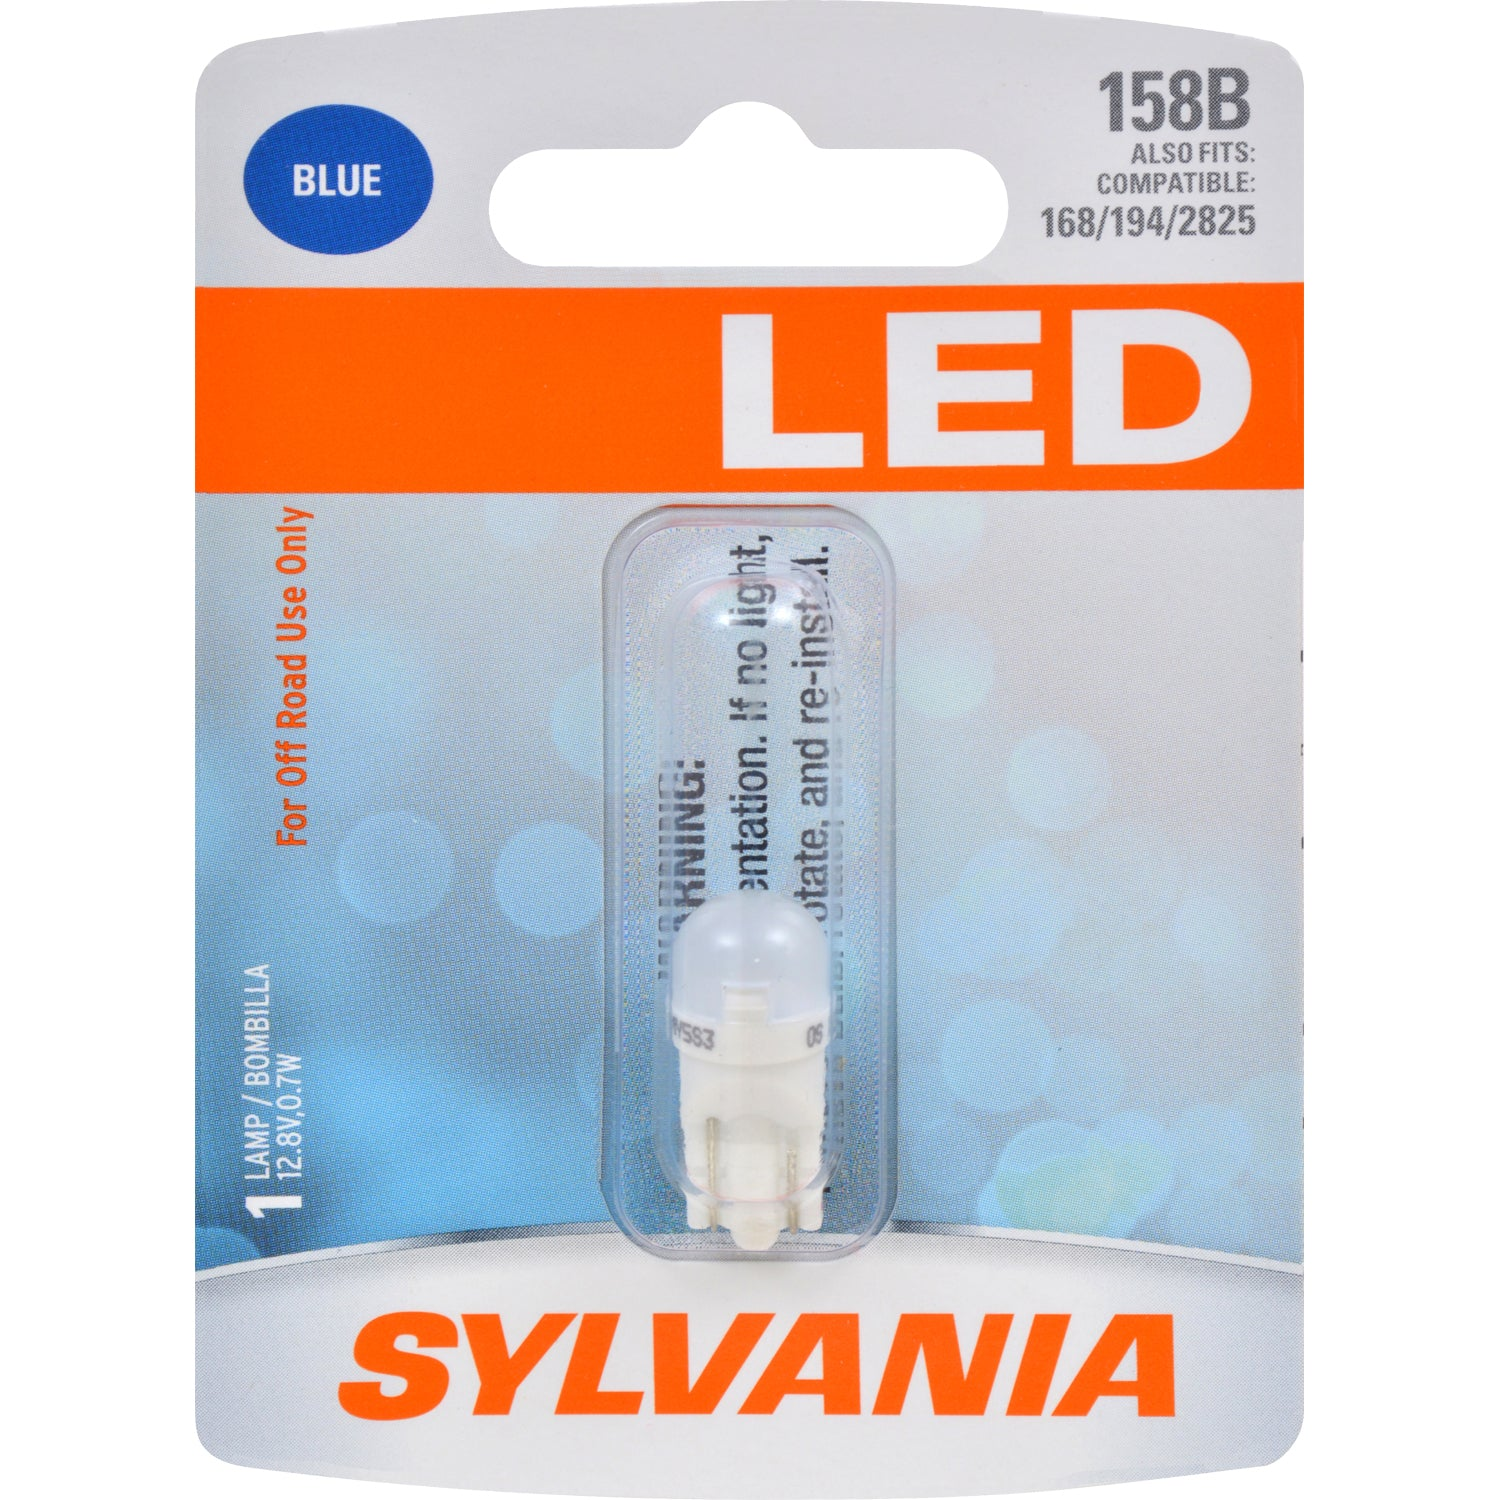 SYLVANIA 158 T10 W5W Blue LED Automotive Bulb - also fits 168, 194, 2825